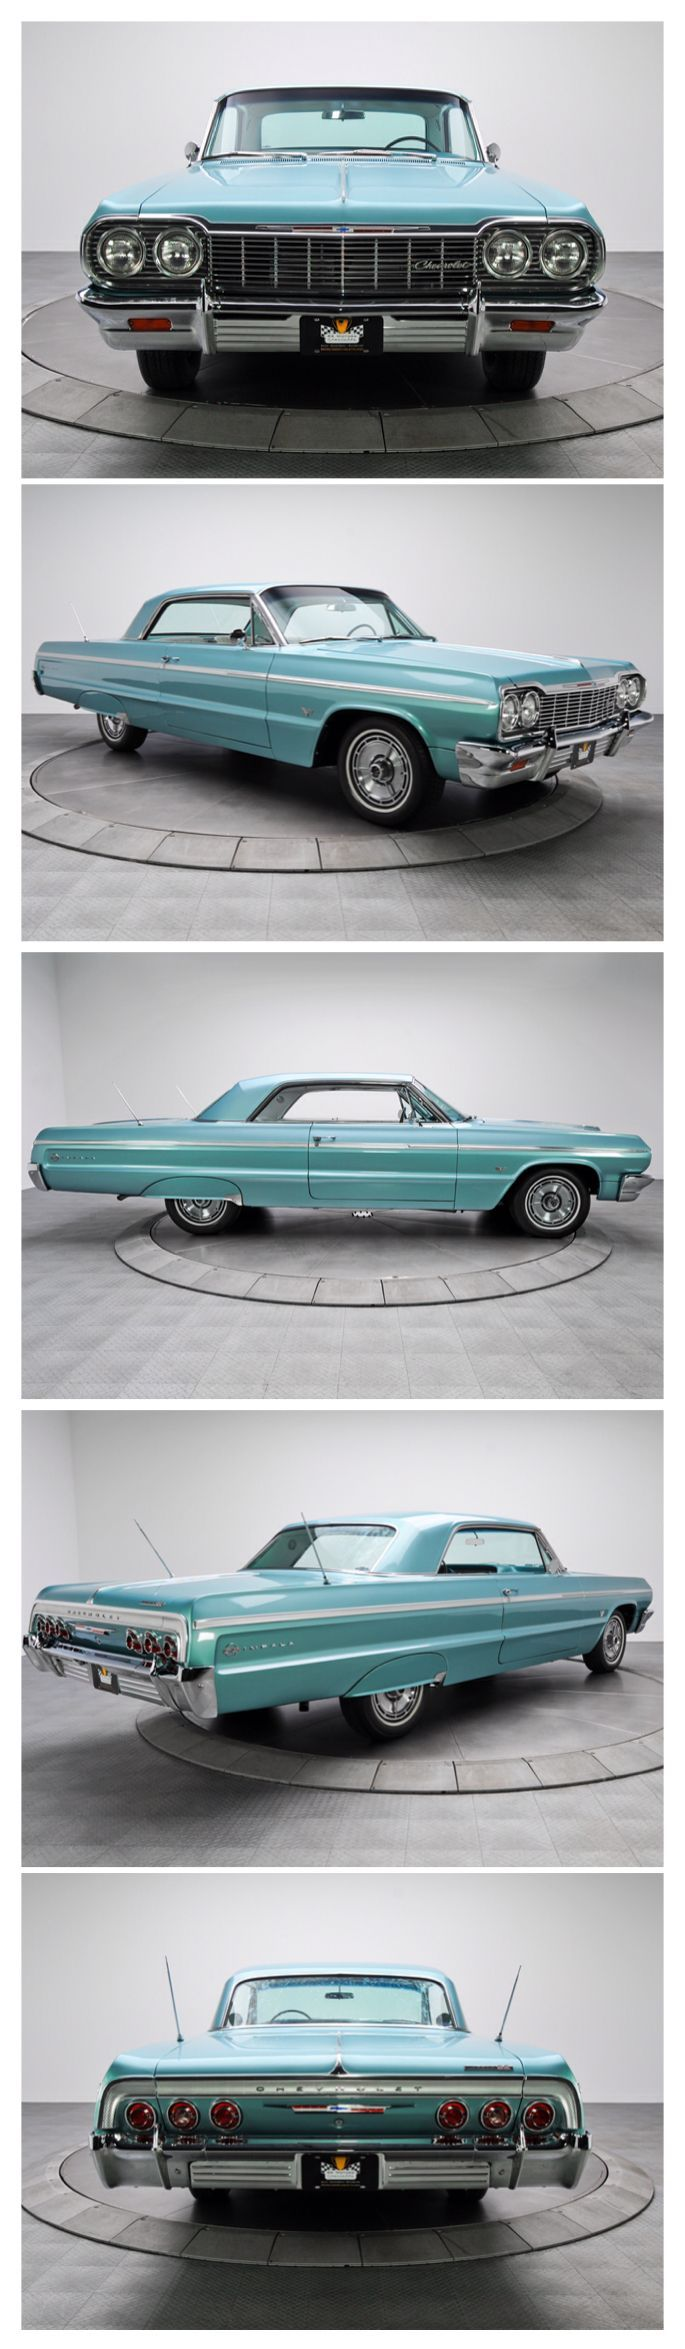 1964 Chevy Impala SS.  As an 8 yr old little girl THIS was THE 1st car I ever took notice of and what started my love for cars.  I'd get excited when my daddy brought home a new car and I'd run out to see every inch of it.  I loved watching my daddy work on his cars.  =D #chevroletimpala1968